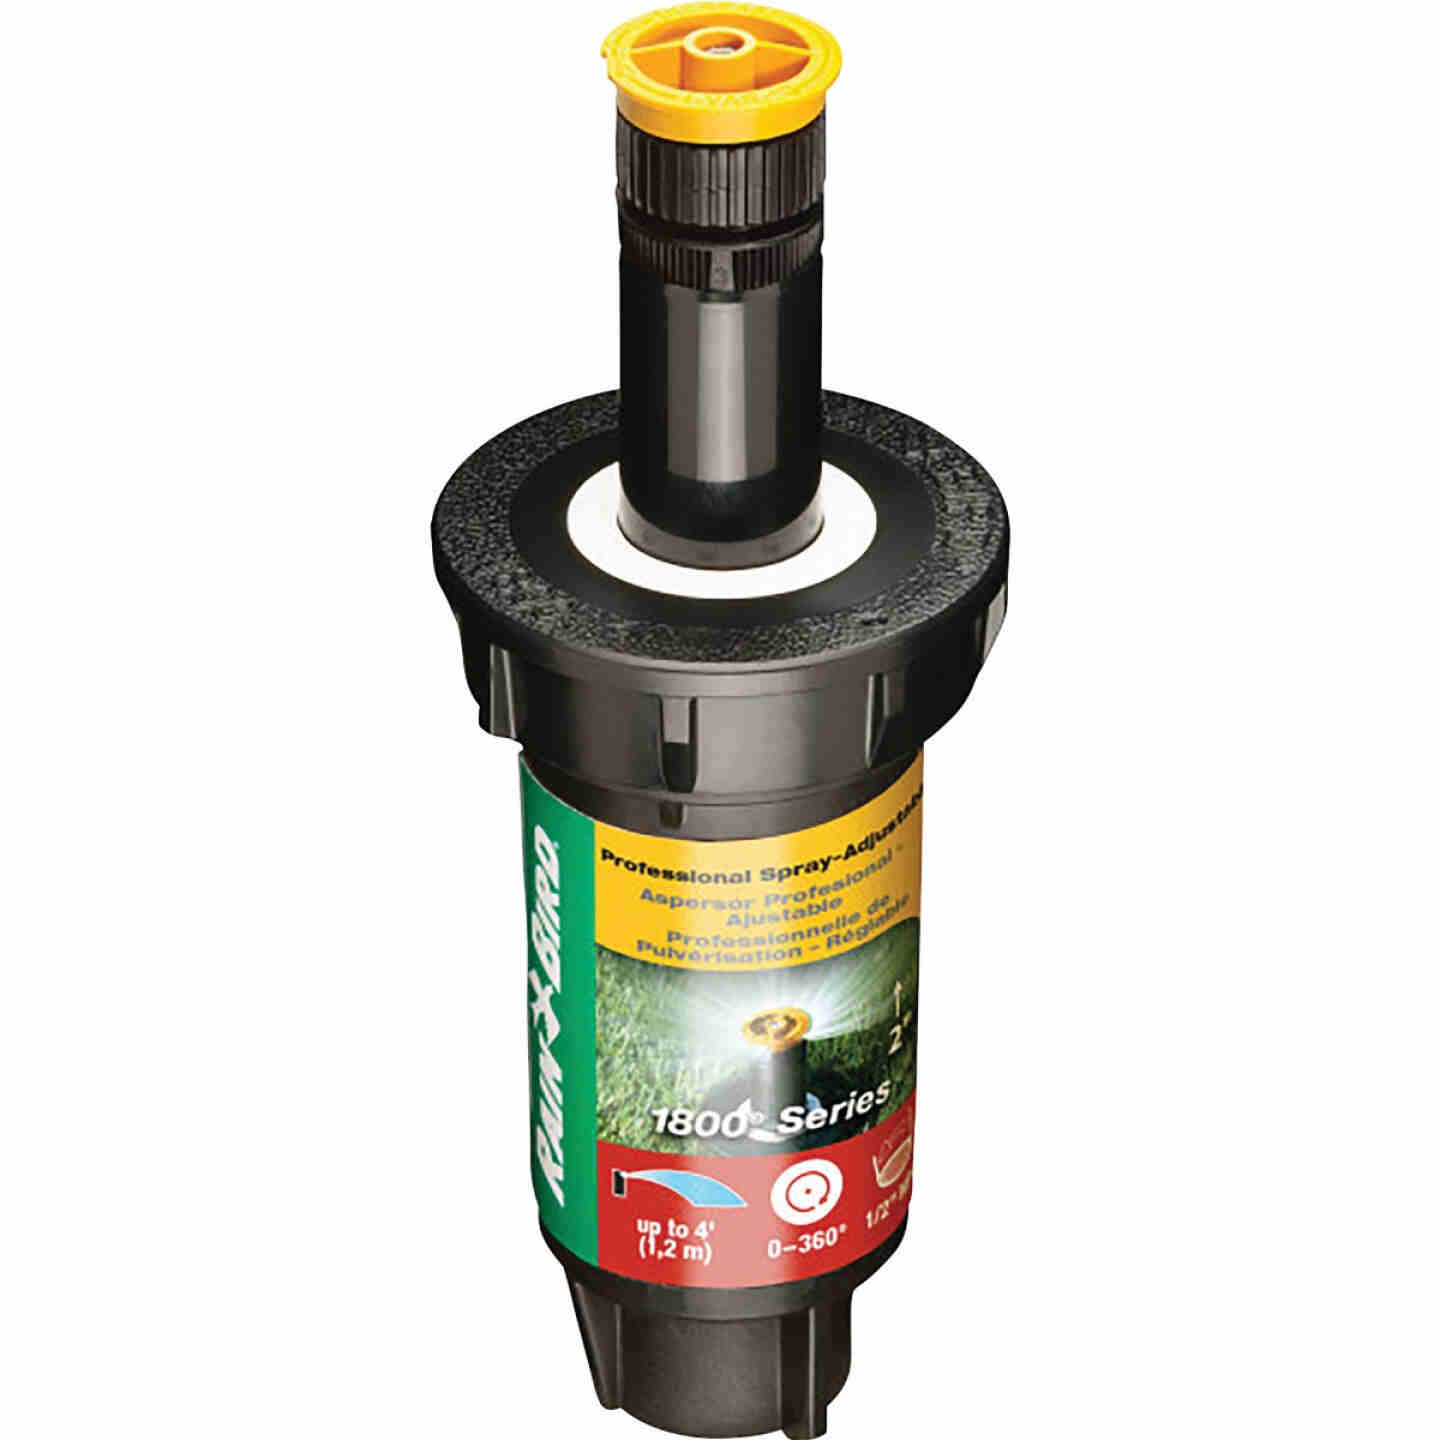 Rain Bird 2 In. Full Circle Adjustable 4 Ft. Rotary Sprinkler with Pressure Regulator Image 1